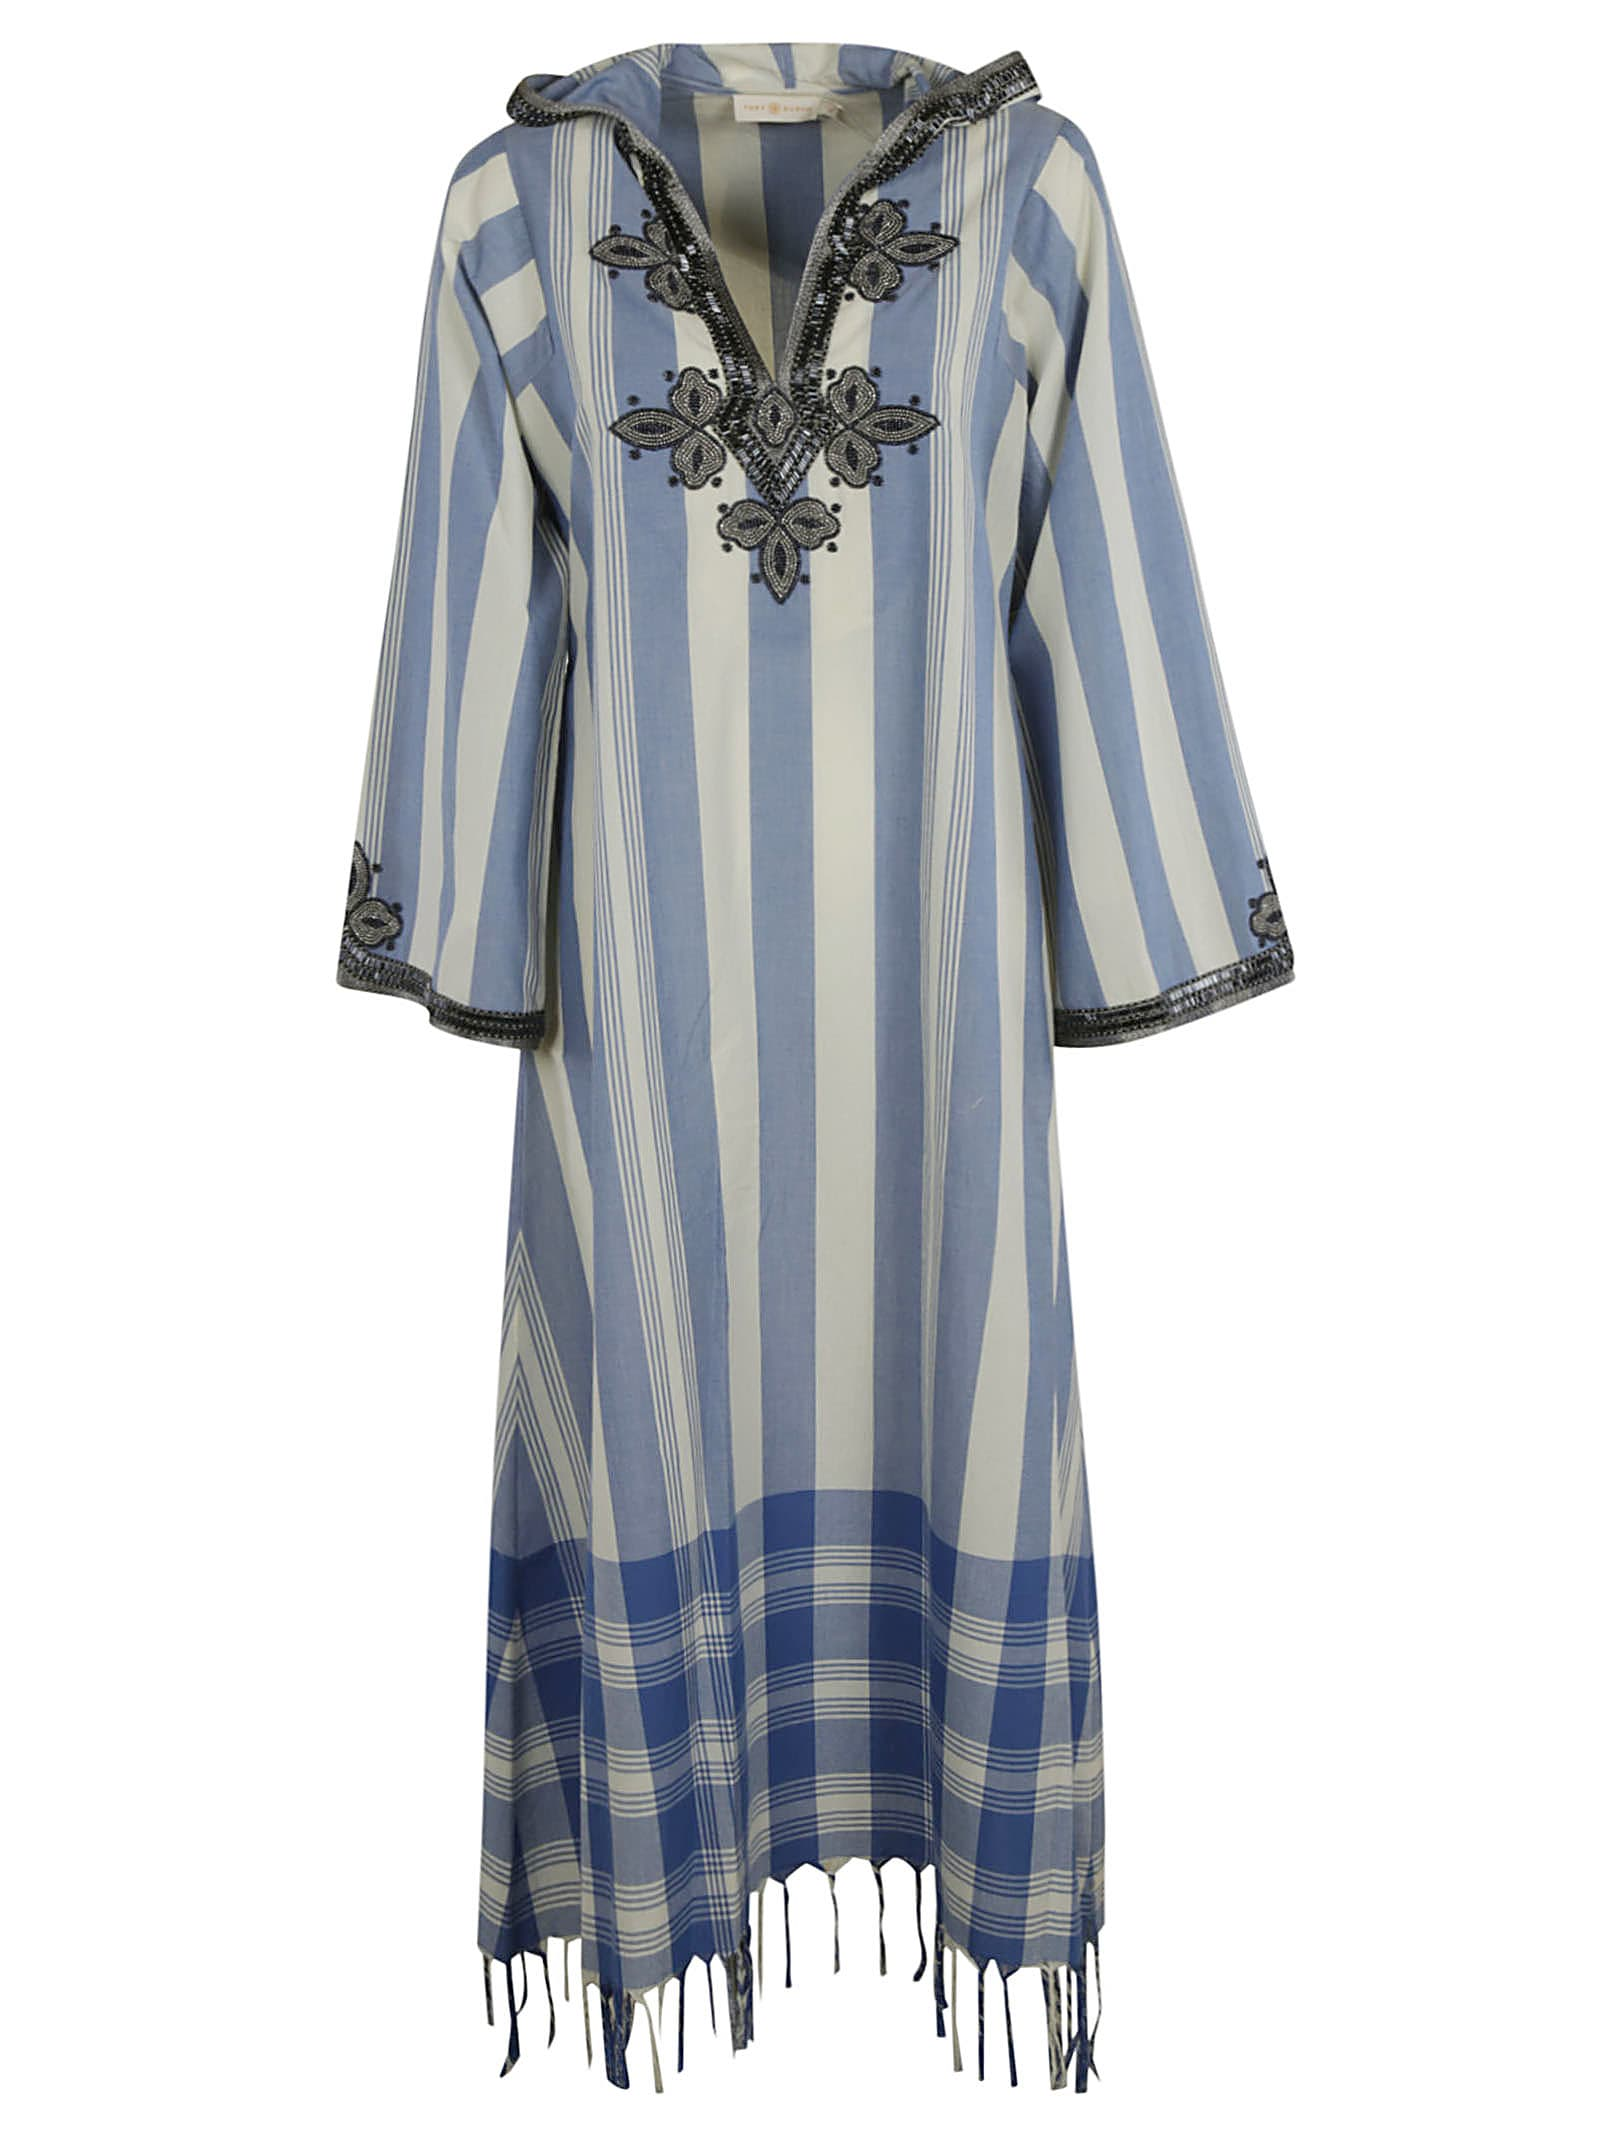 Buy Tory Burch Striped Caftan Fringed Dress online, shop Tory Burch with free shipping